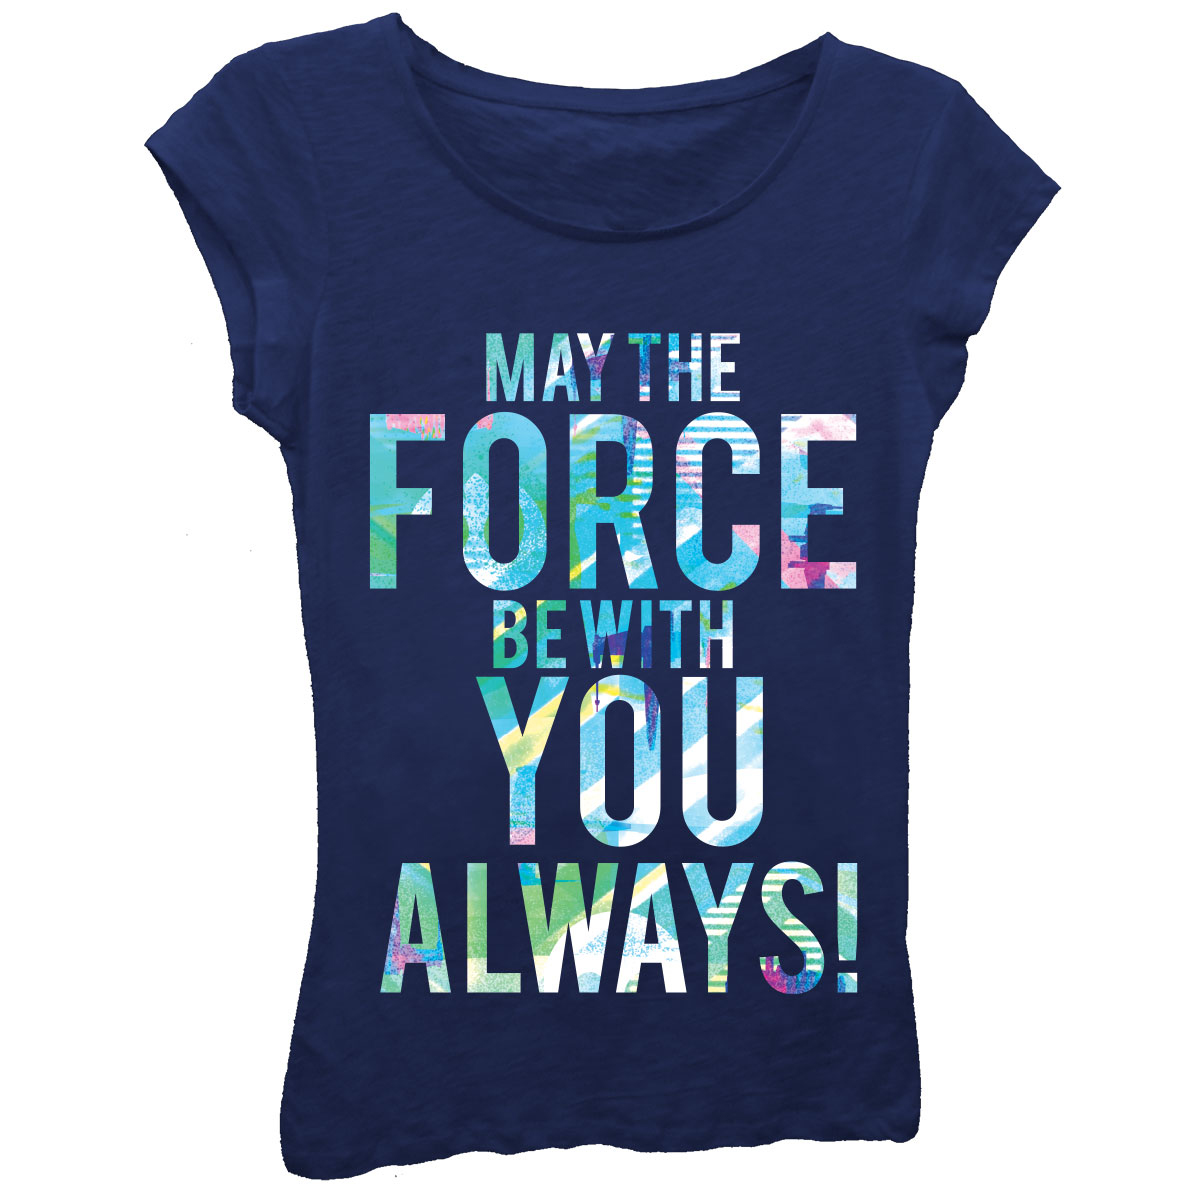 """Girls' """"May The Force Be With You Always!"""" Short Sleeve Graphic T-shirt With Crystalline"""